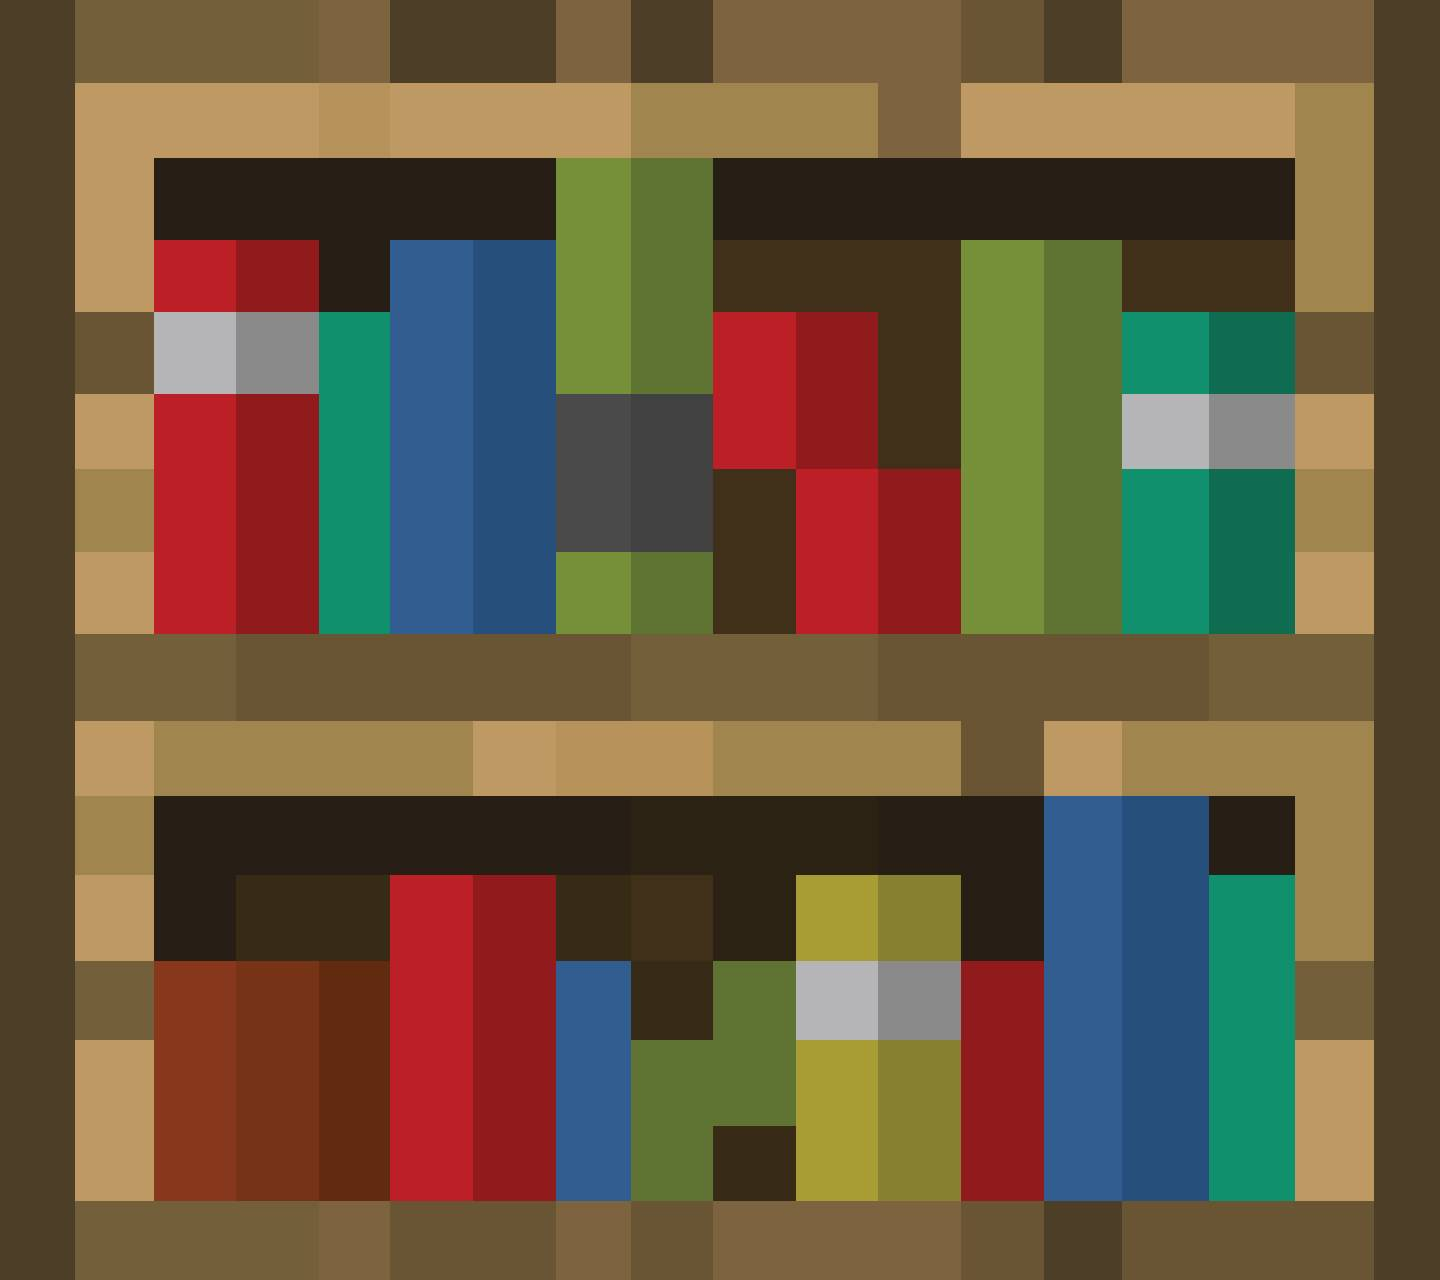 Library Minecraft